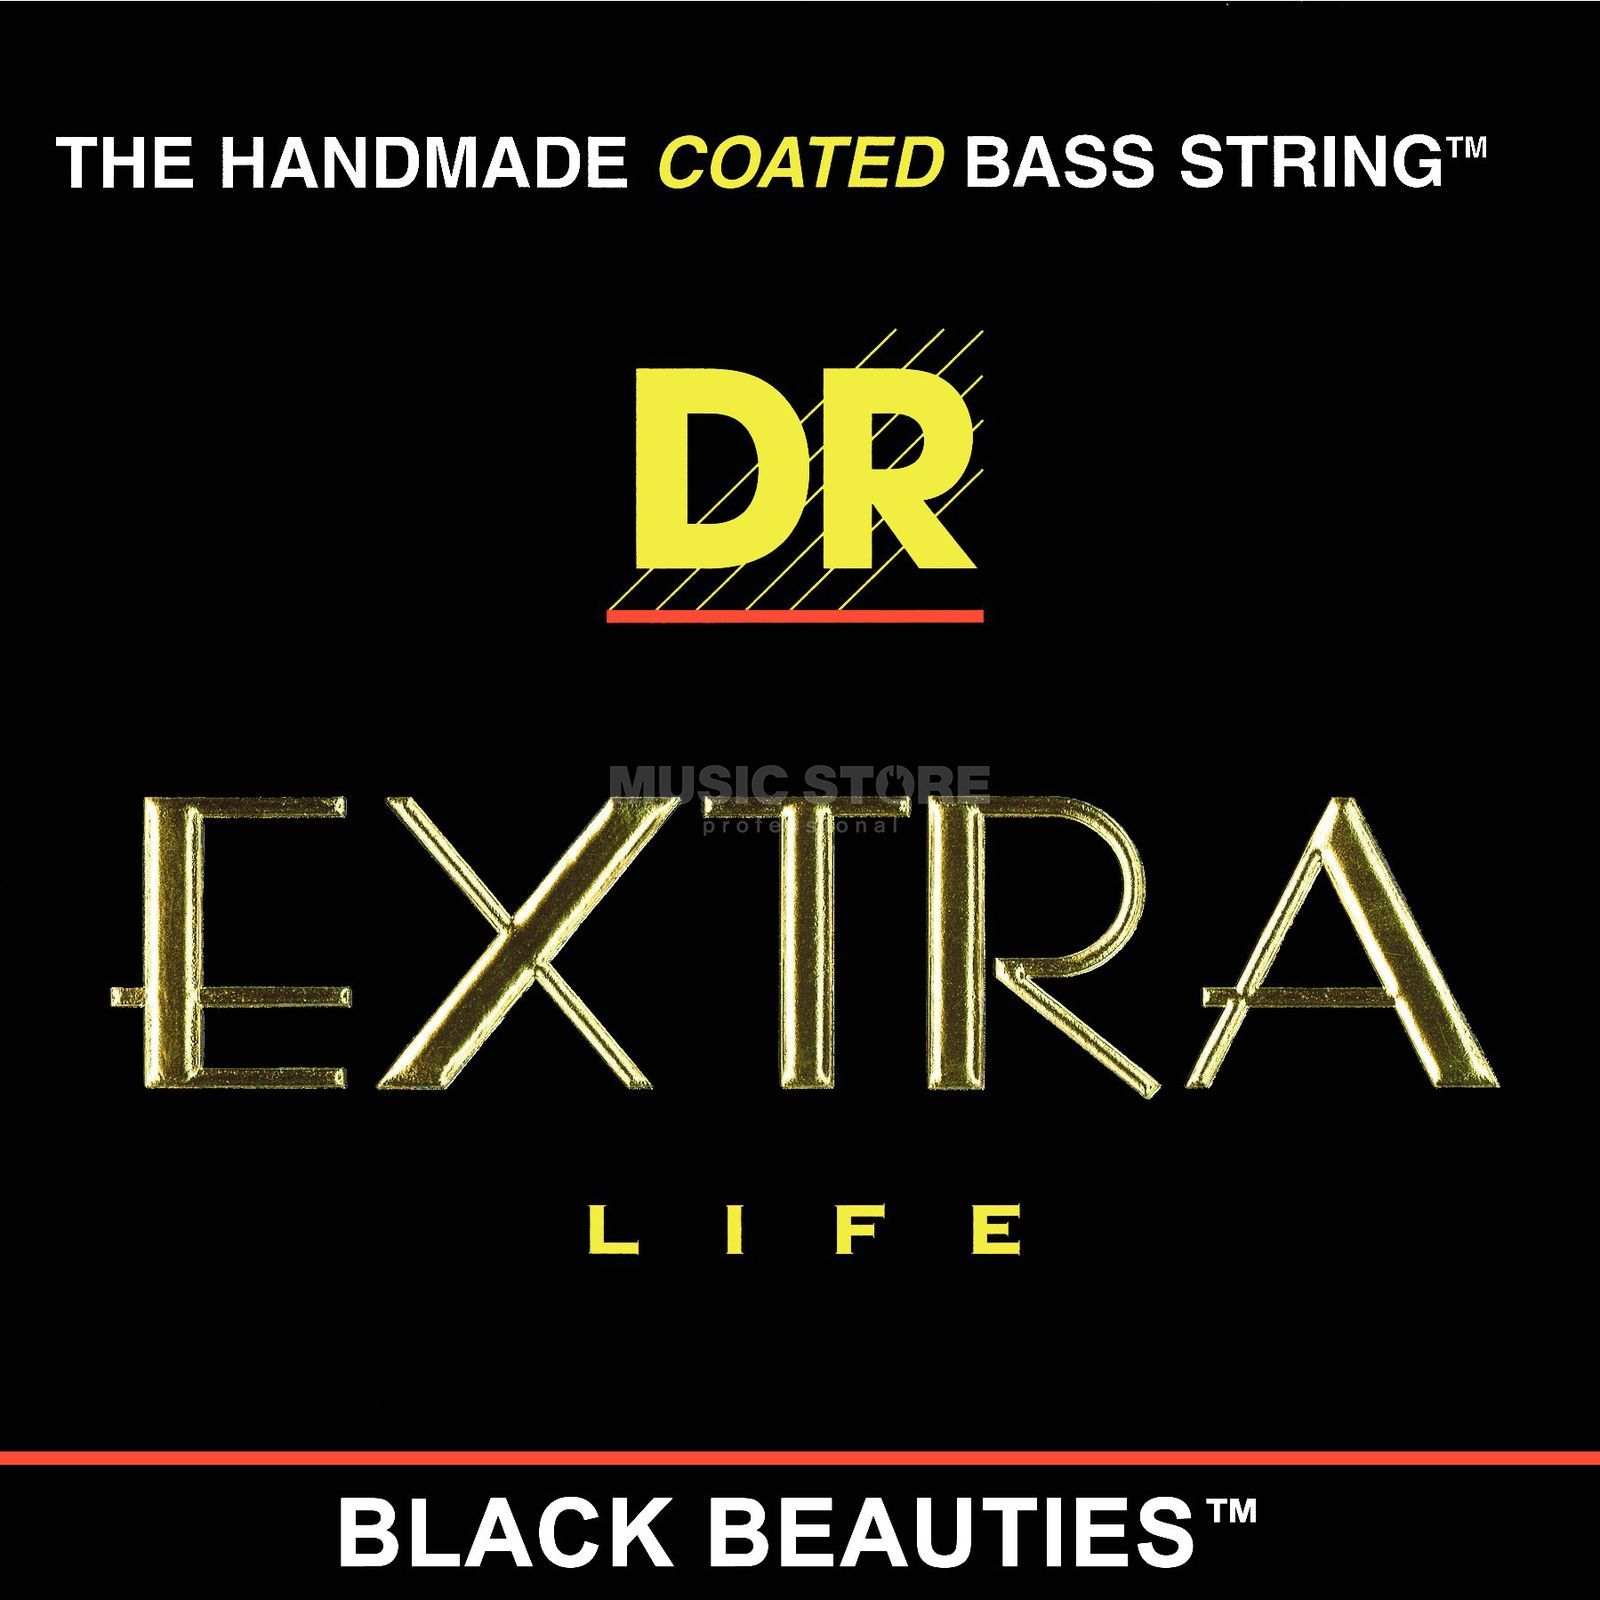 DR Bass Strings Set of 4: 50-110 Extra-Life Black Beauties BKBT-50 Produktbillede